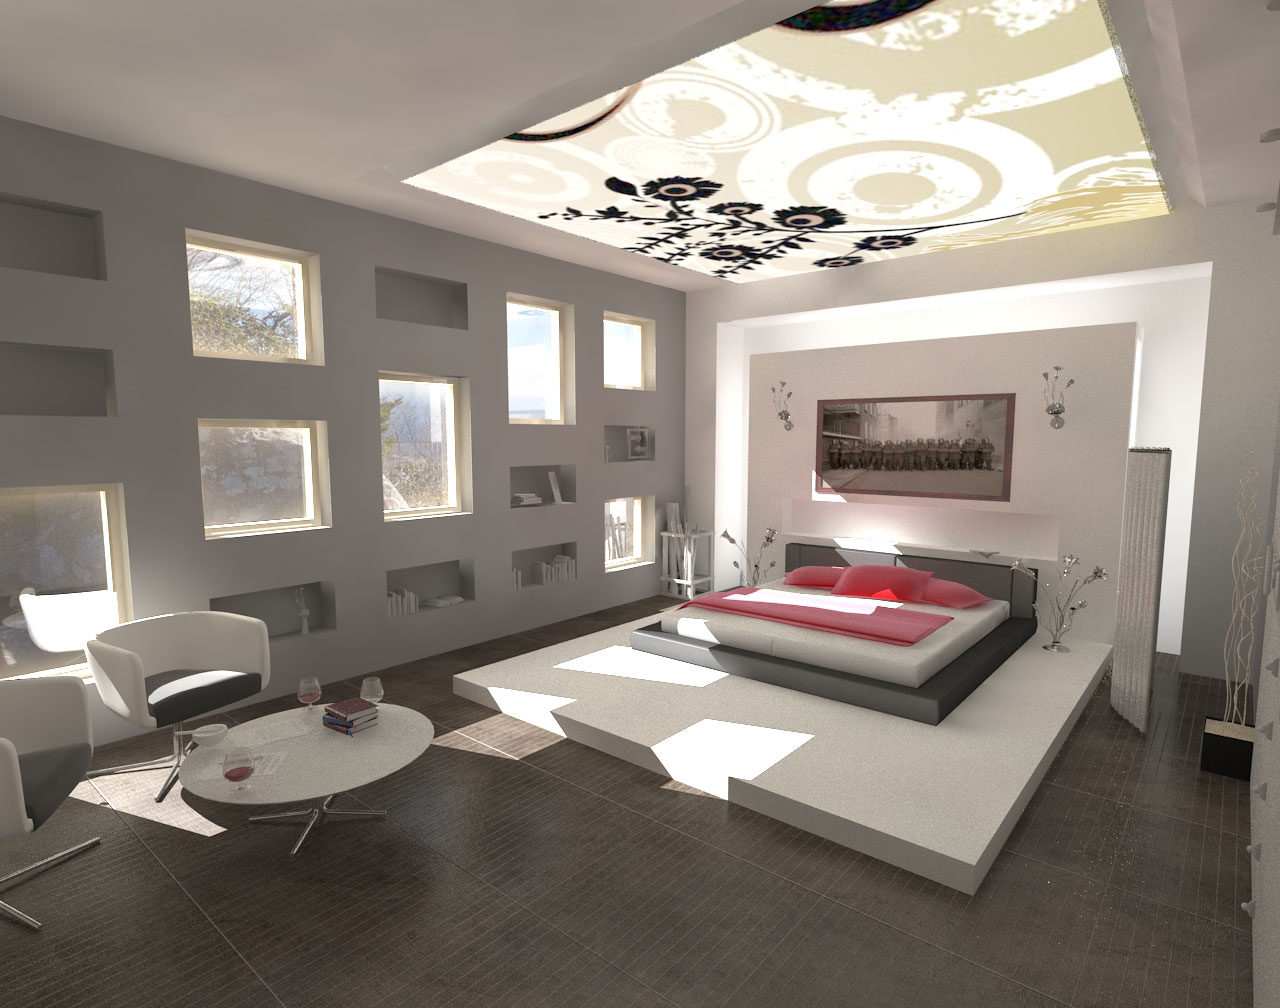 Home furniture modern bedroom lighting for Luxury modern bedroom